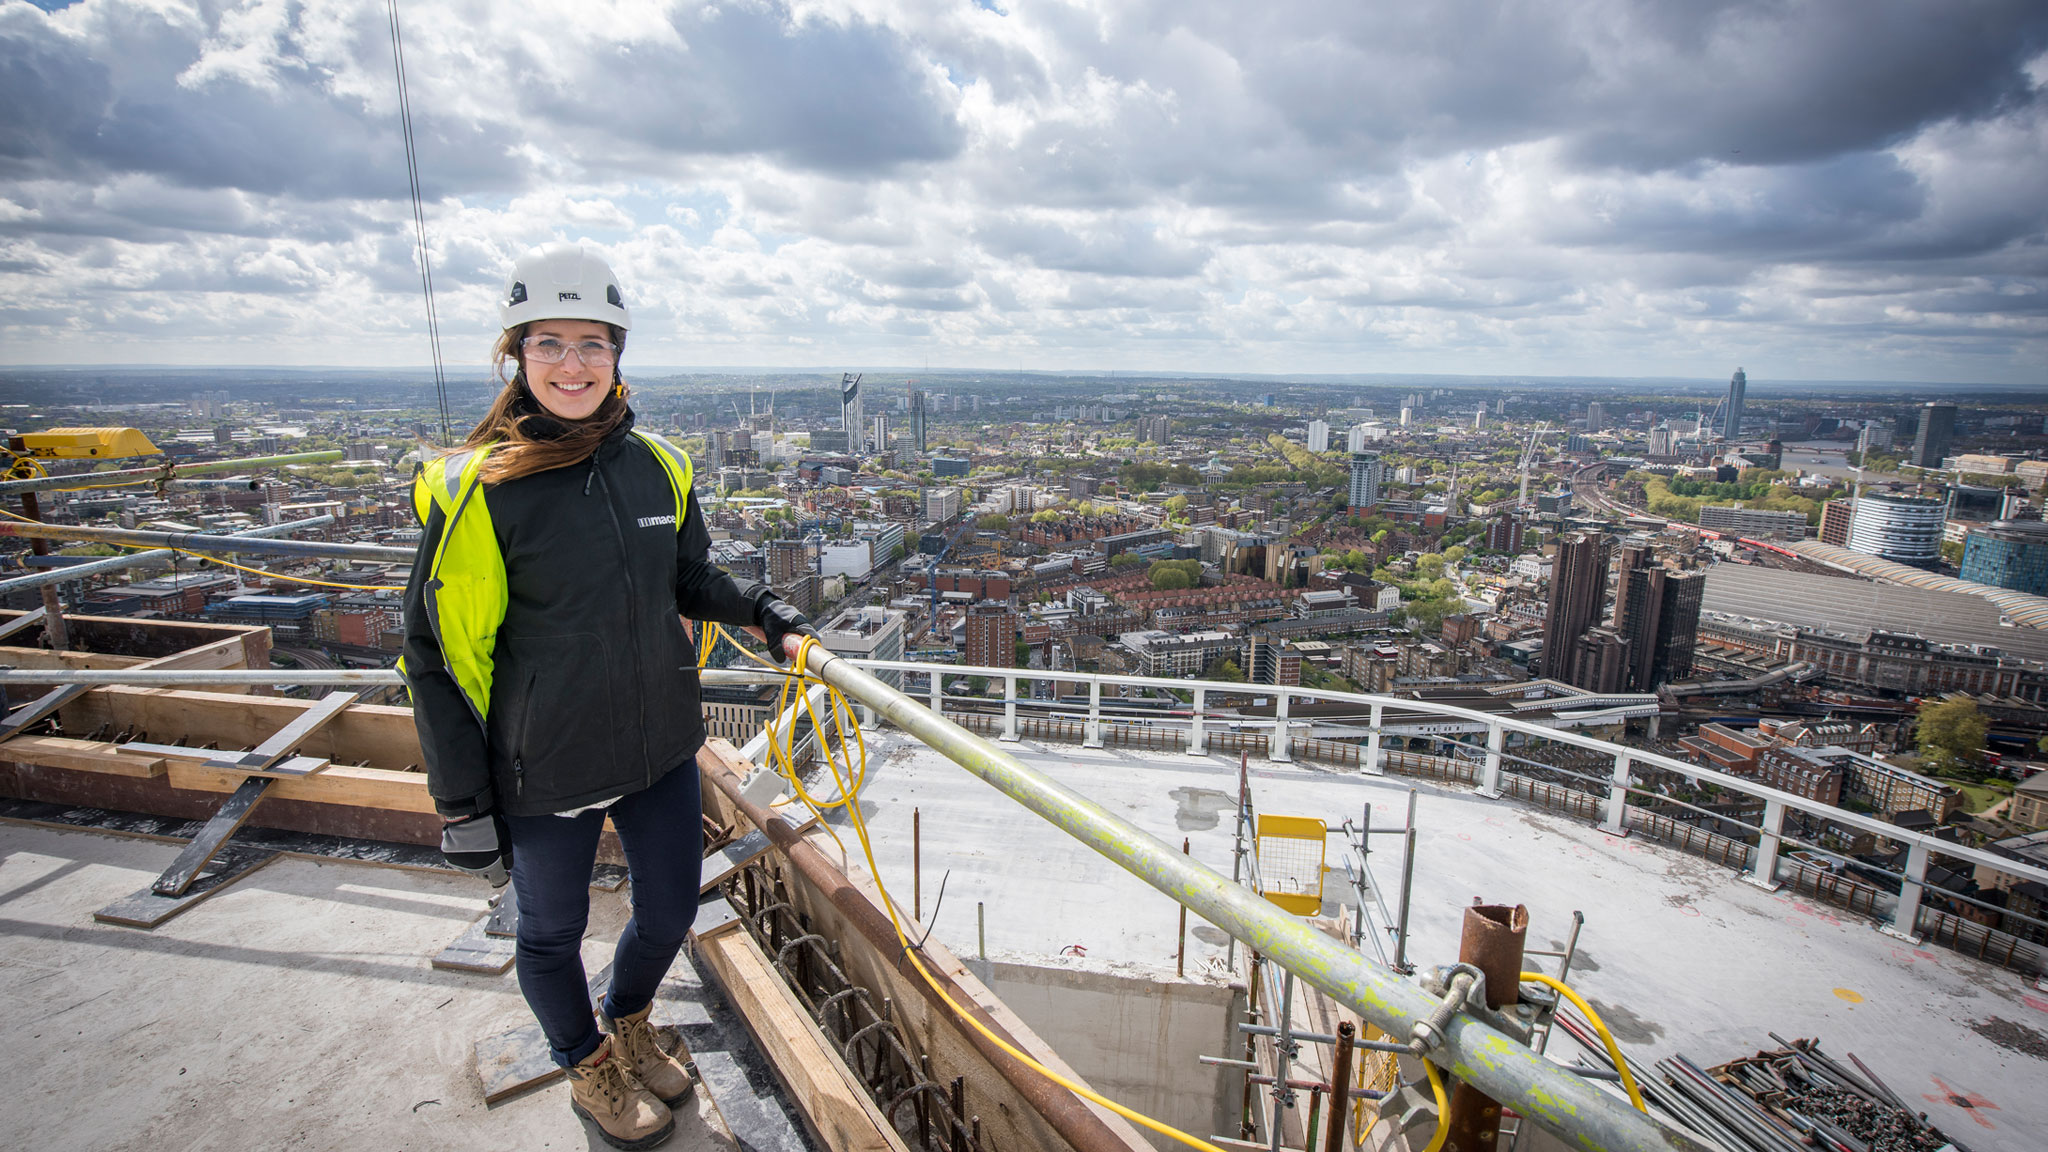 Student Rachael Broad on placement with Mace in 2015.